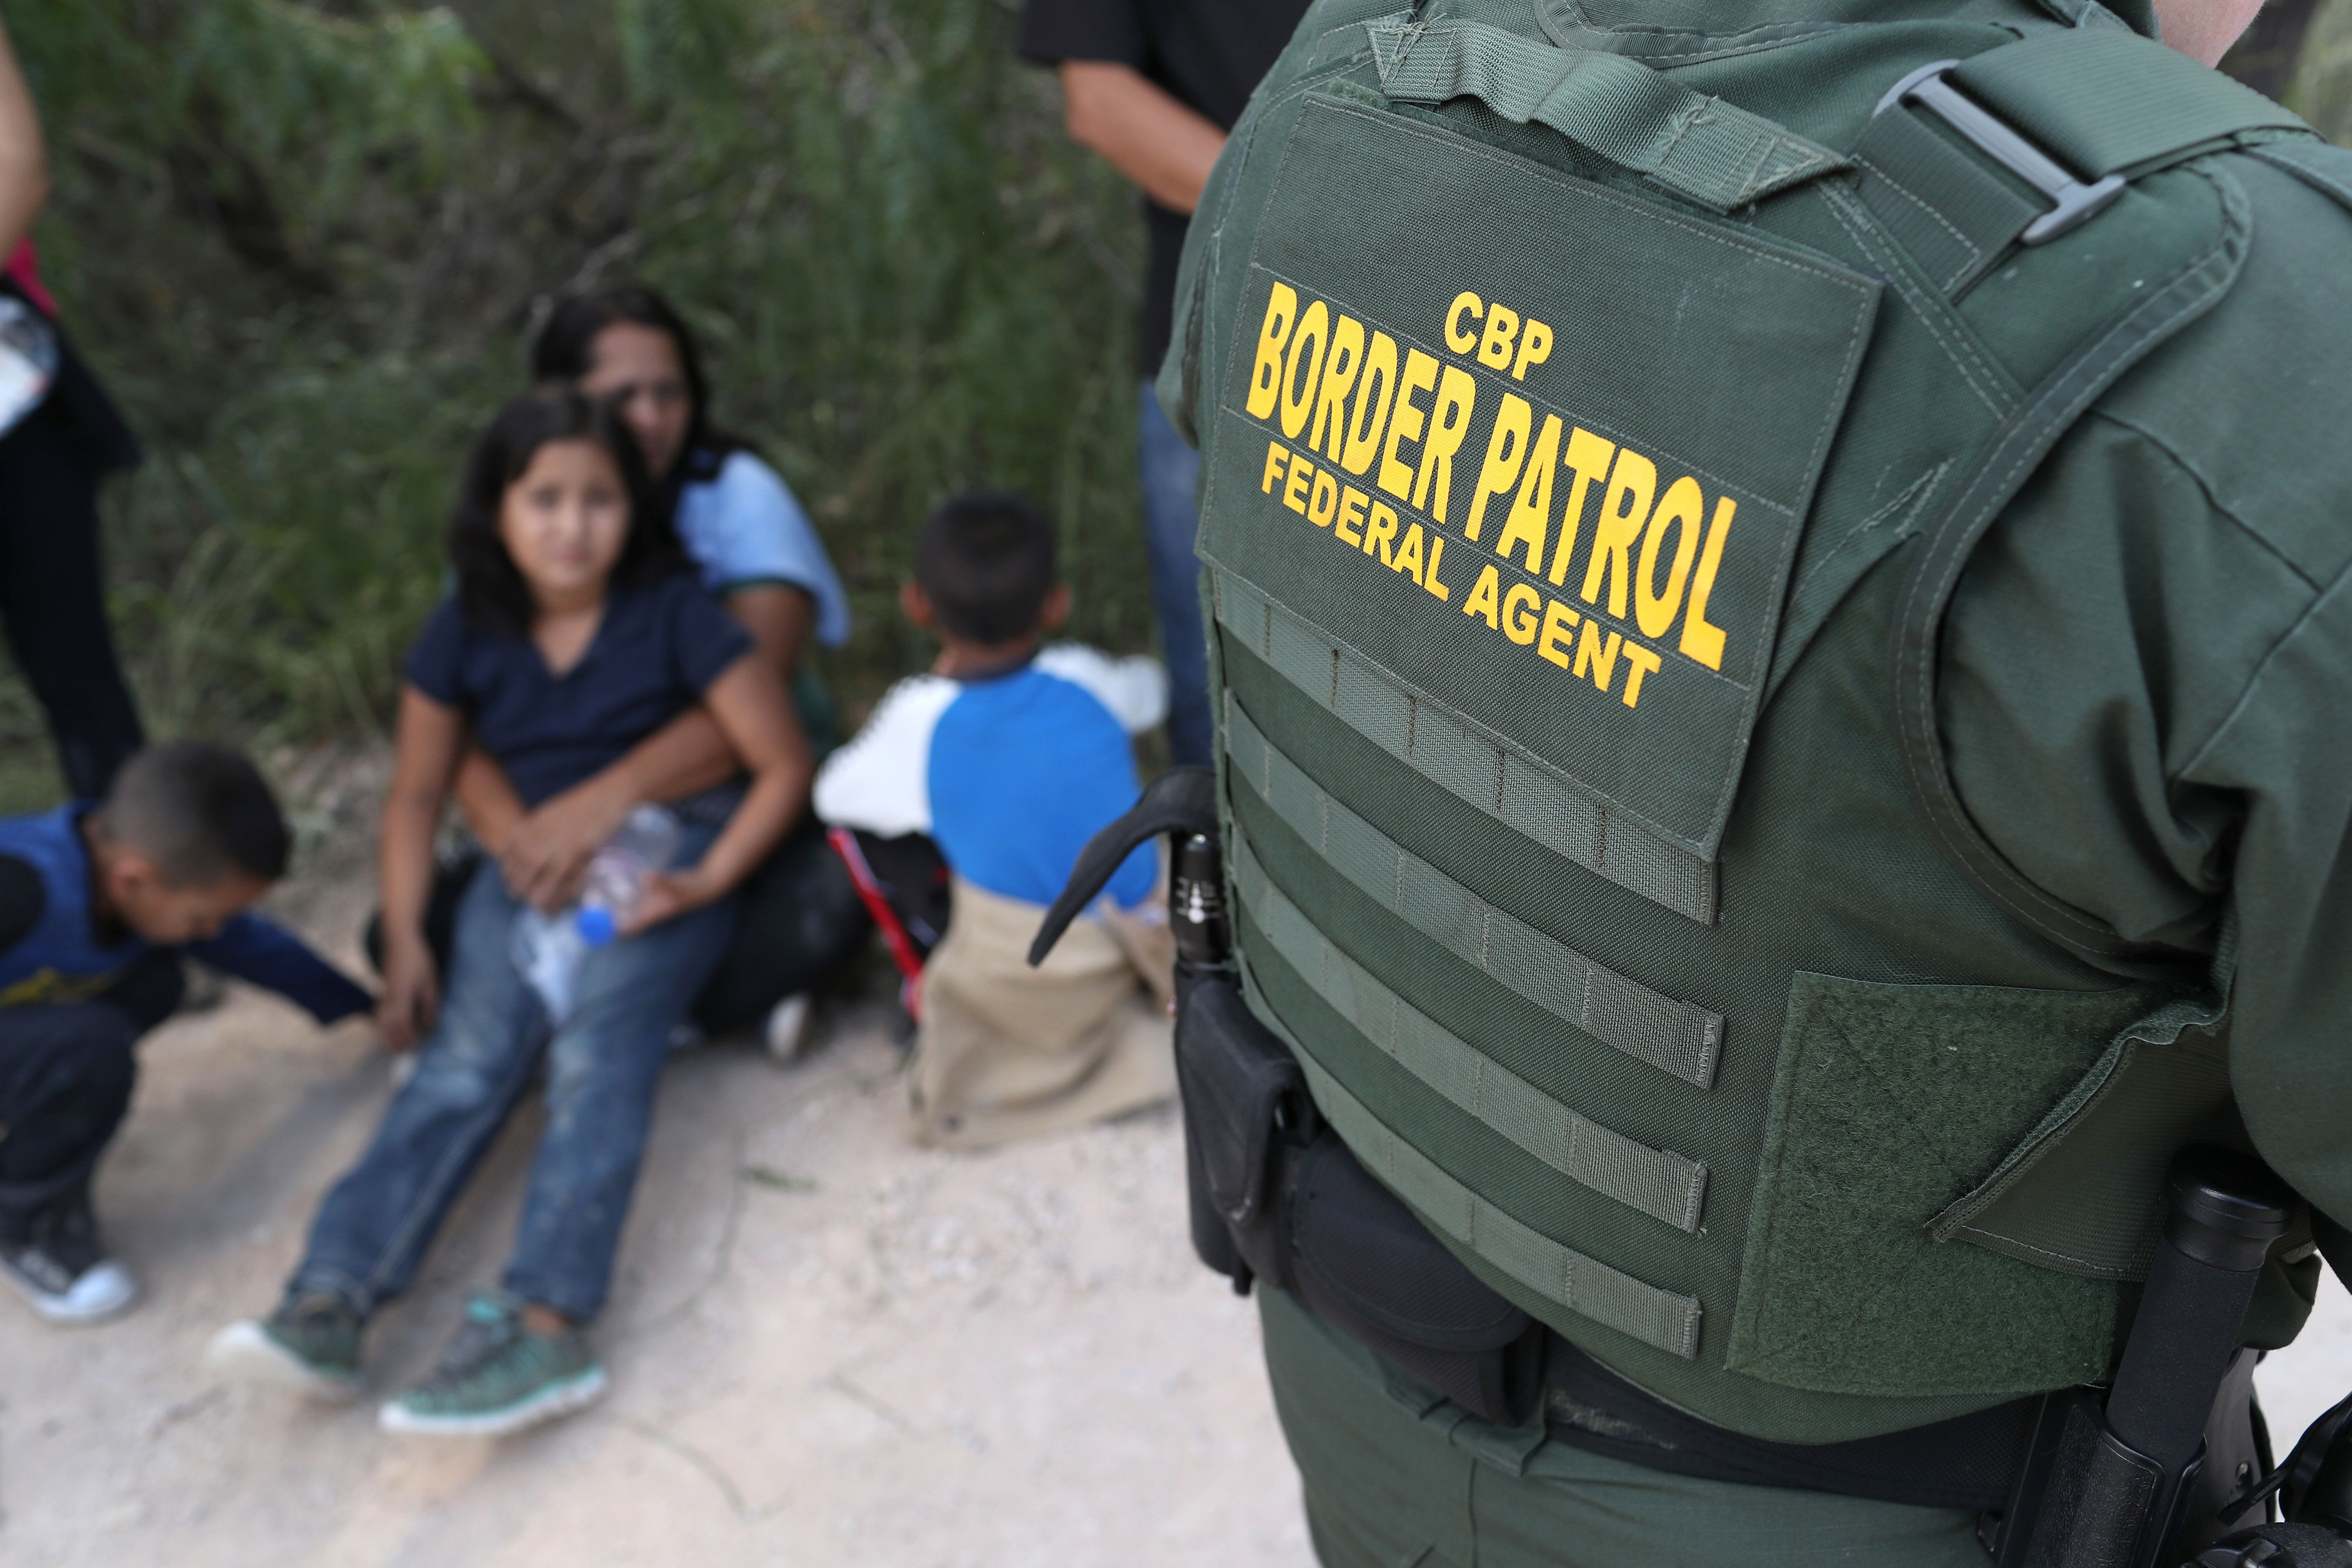 MCALLEN, TX - JUNE 12:   Central American asylum seekers wait as U.S. Border Patrol agents take them into custody on June 12, 2018 near McAllen, Texas. The families were then sent to a U.S. Customs and Border Protection (CBP) processing center for possible separation. U.S. border authorities are executing the Trump administration's 'zero tolerance' policy towards undocumented immigrants. U.S. Attorney General Jeff Sessions also said that domestic and gang violence in immigrants' country of origin would no longer qualify them for political asylum status.  (Photo by John Moore/Getty Images)